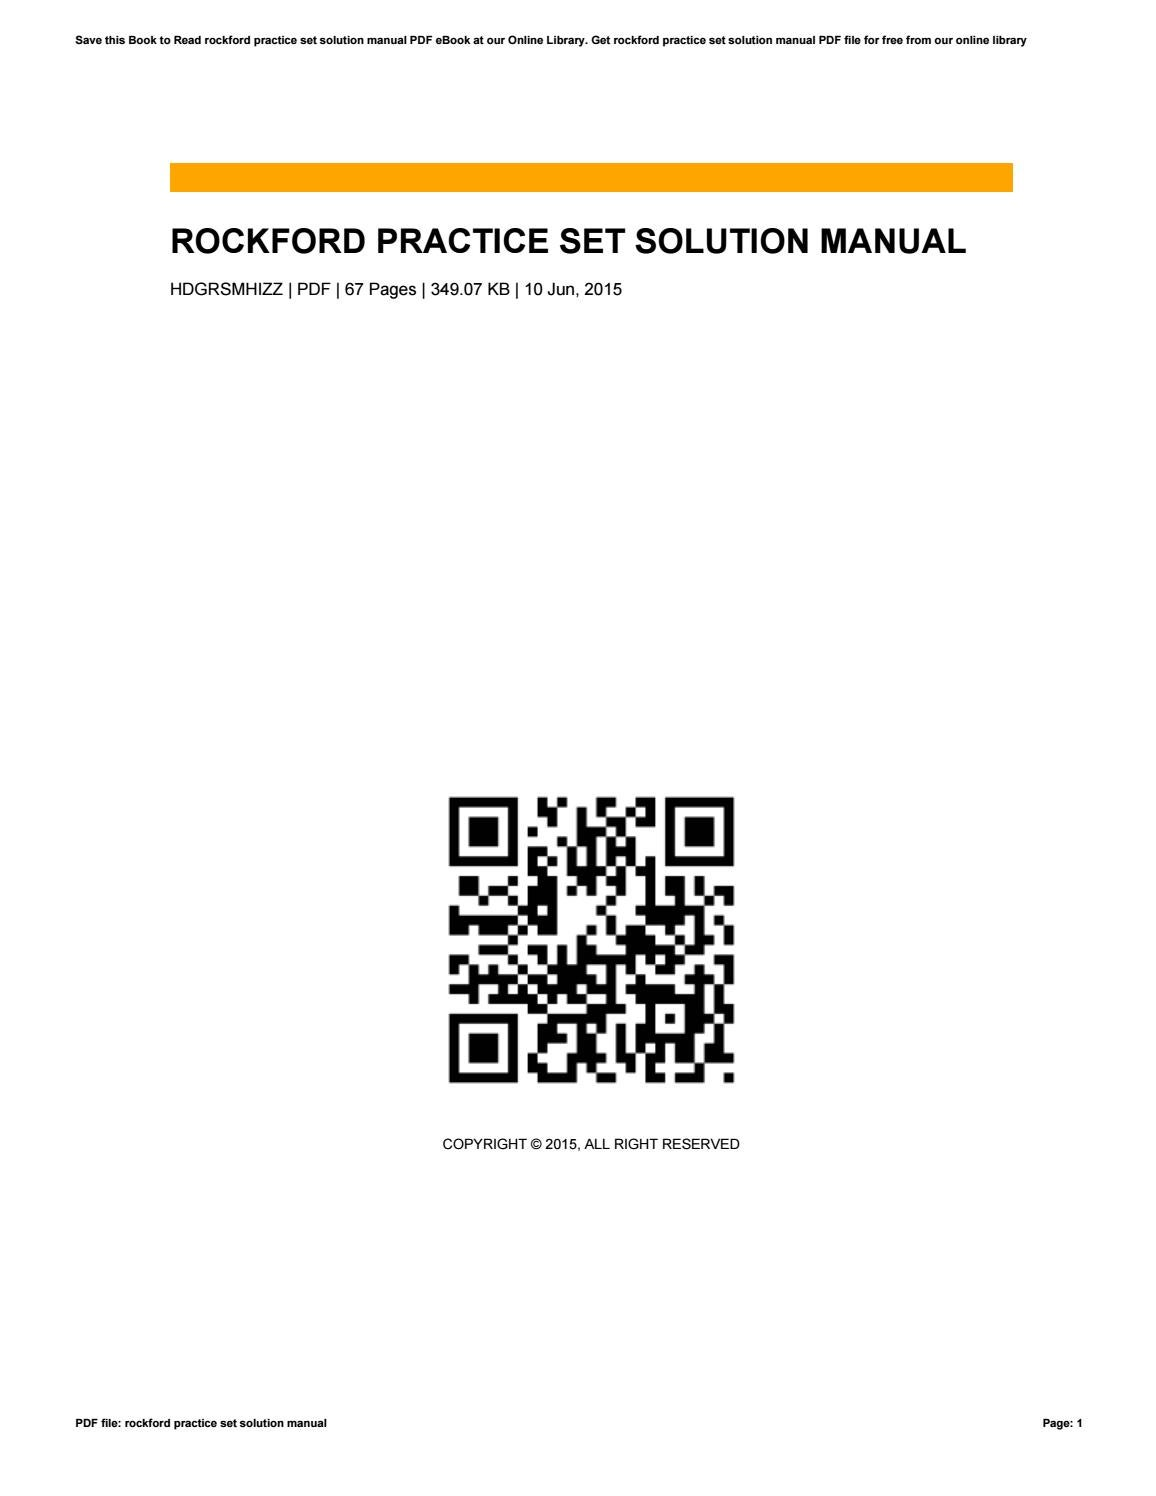 rockford practice set solution manual by kathysanchez3302 issuu rh issuu com Legal Practice Manuals Immigration Practice Manual